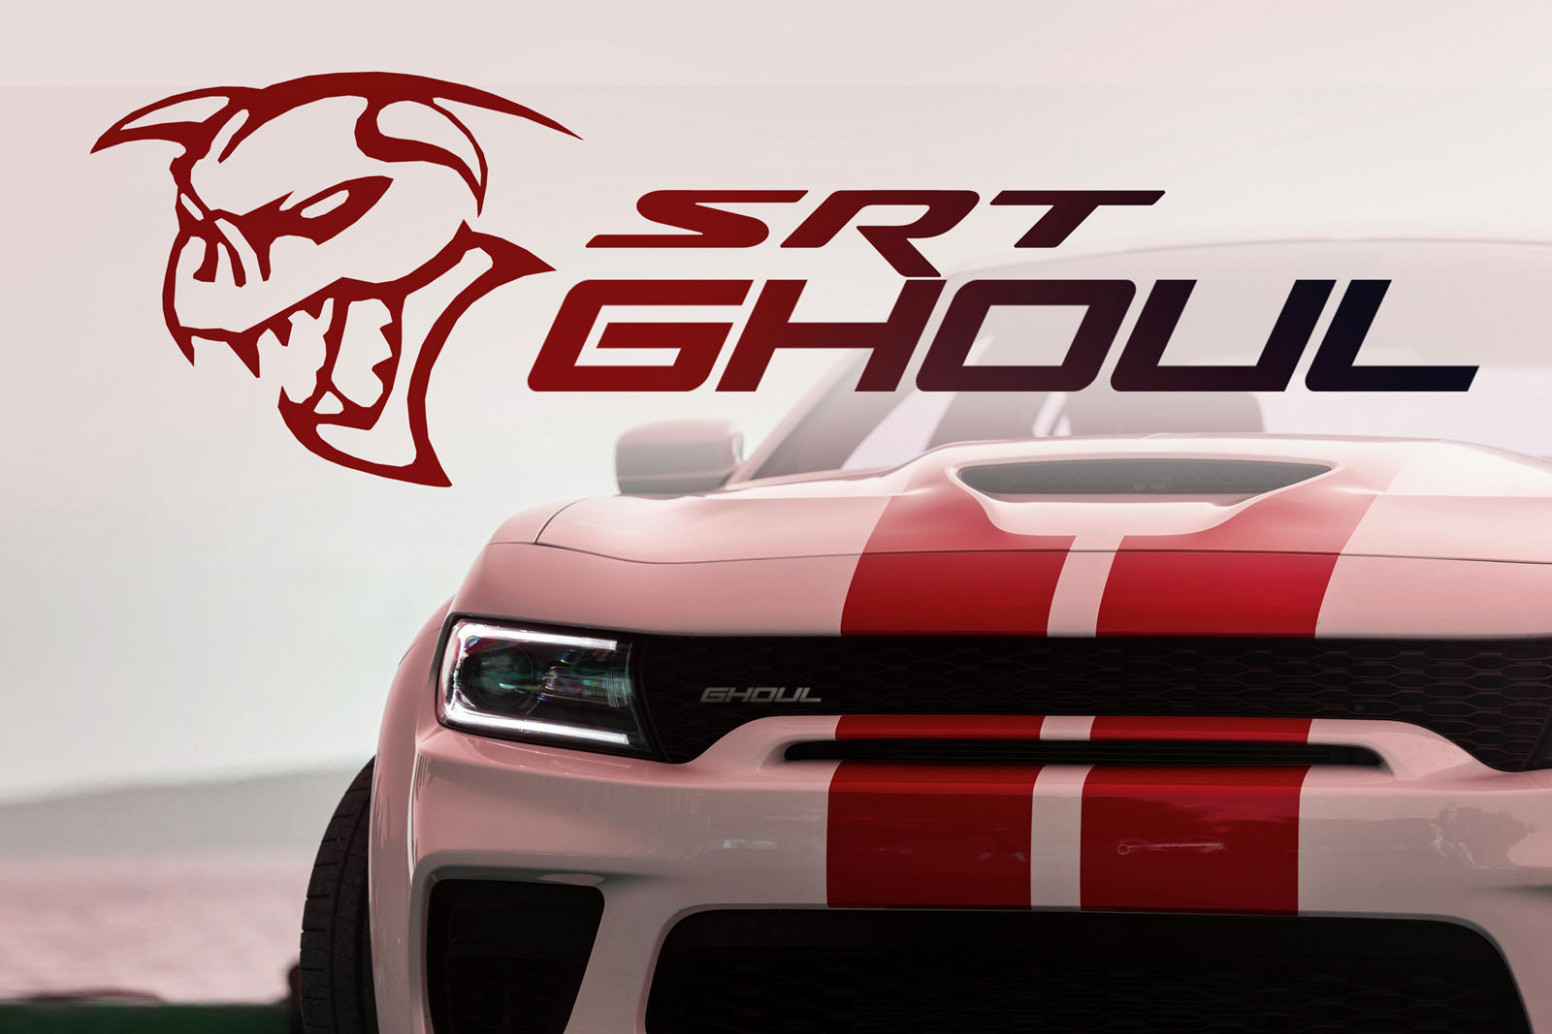 Release Date and Concept 2022 Challenger Srt8 Hellcat